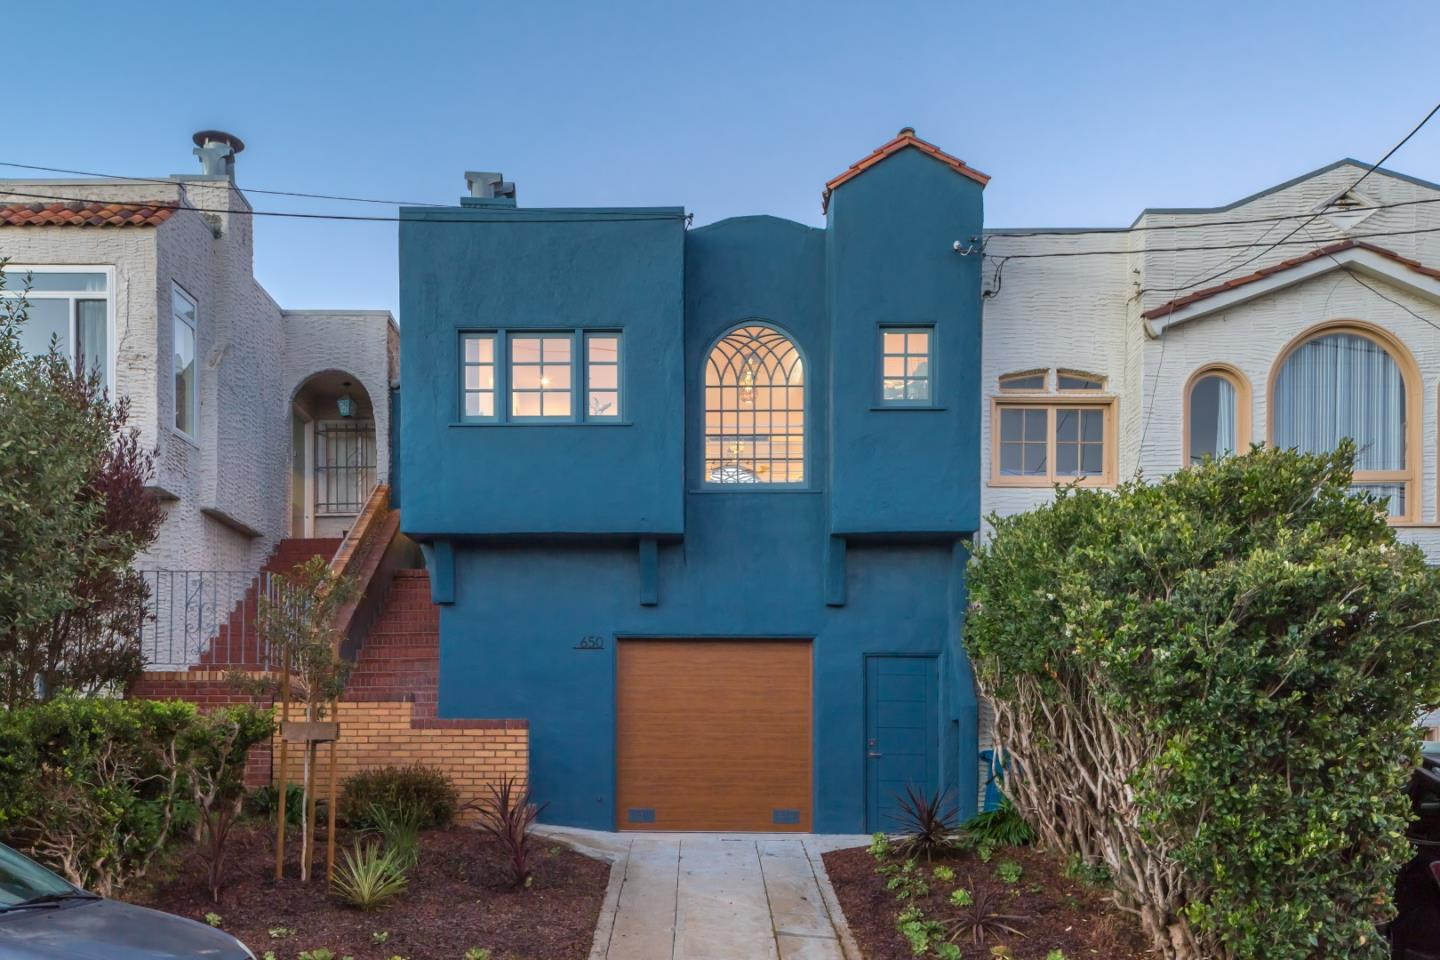 Image for 650 Joost Avenue, <br>San Francisco 94127